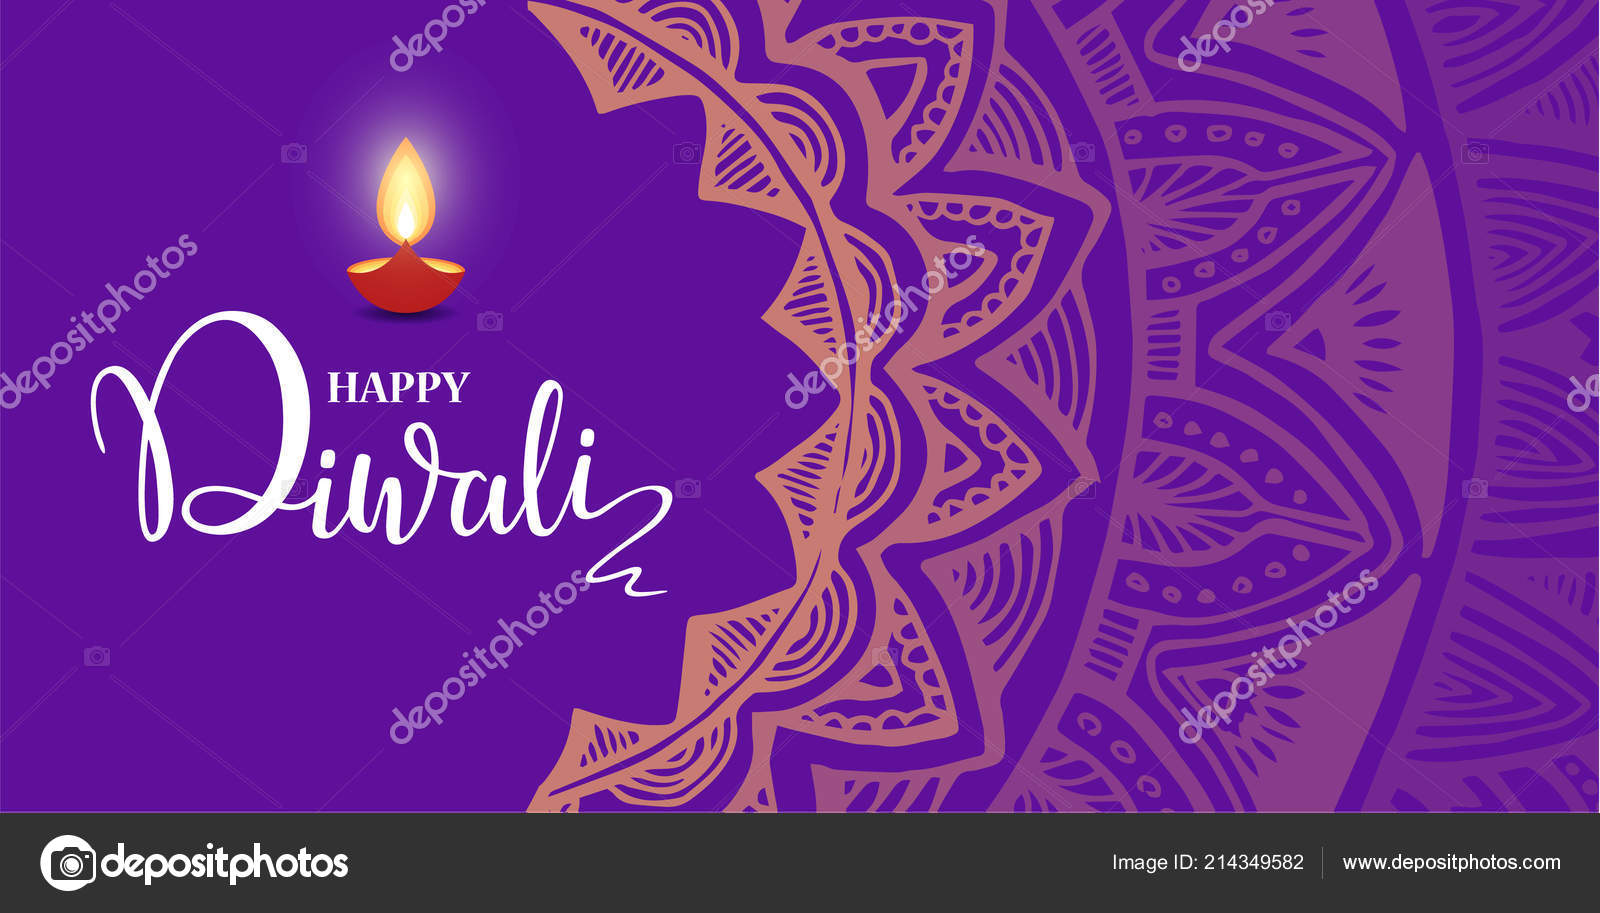 Happy Diwali lettering wallpaper design template. illustration of burning Diwali diya oil lamp for light